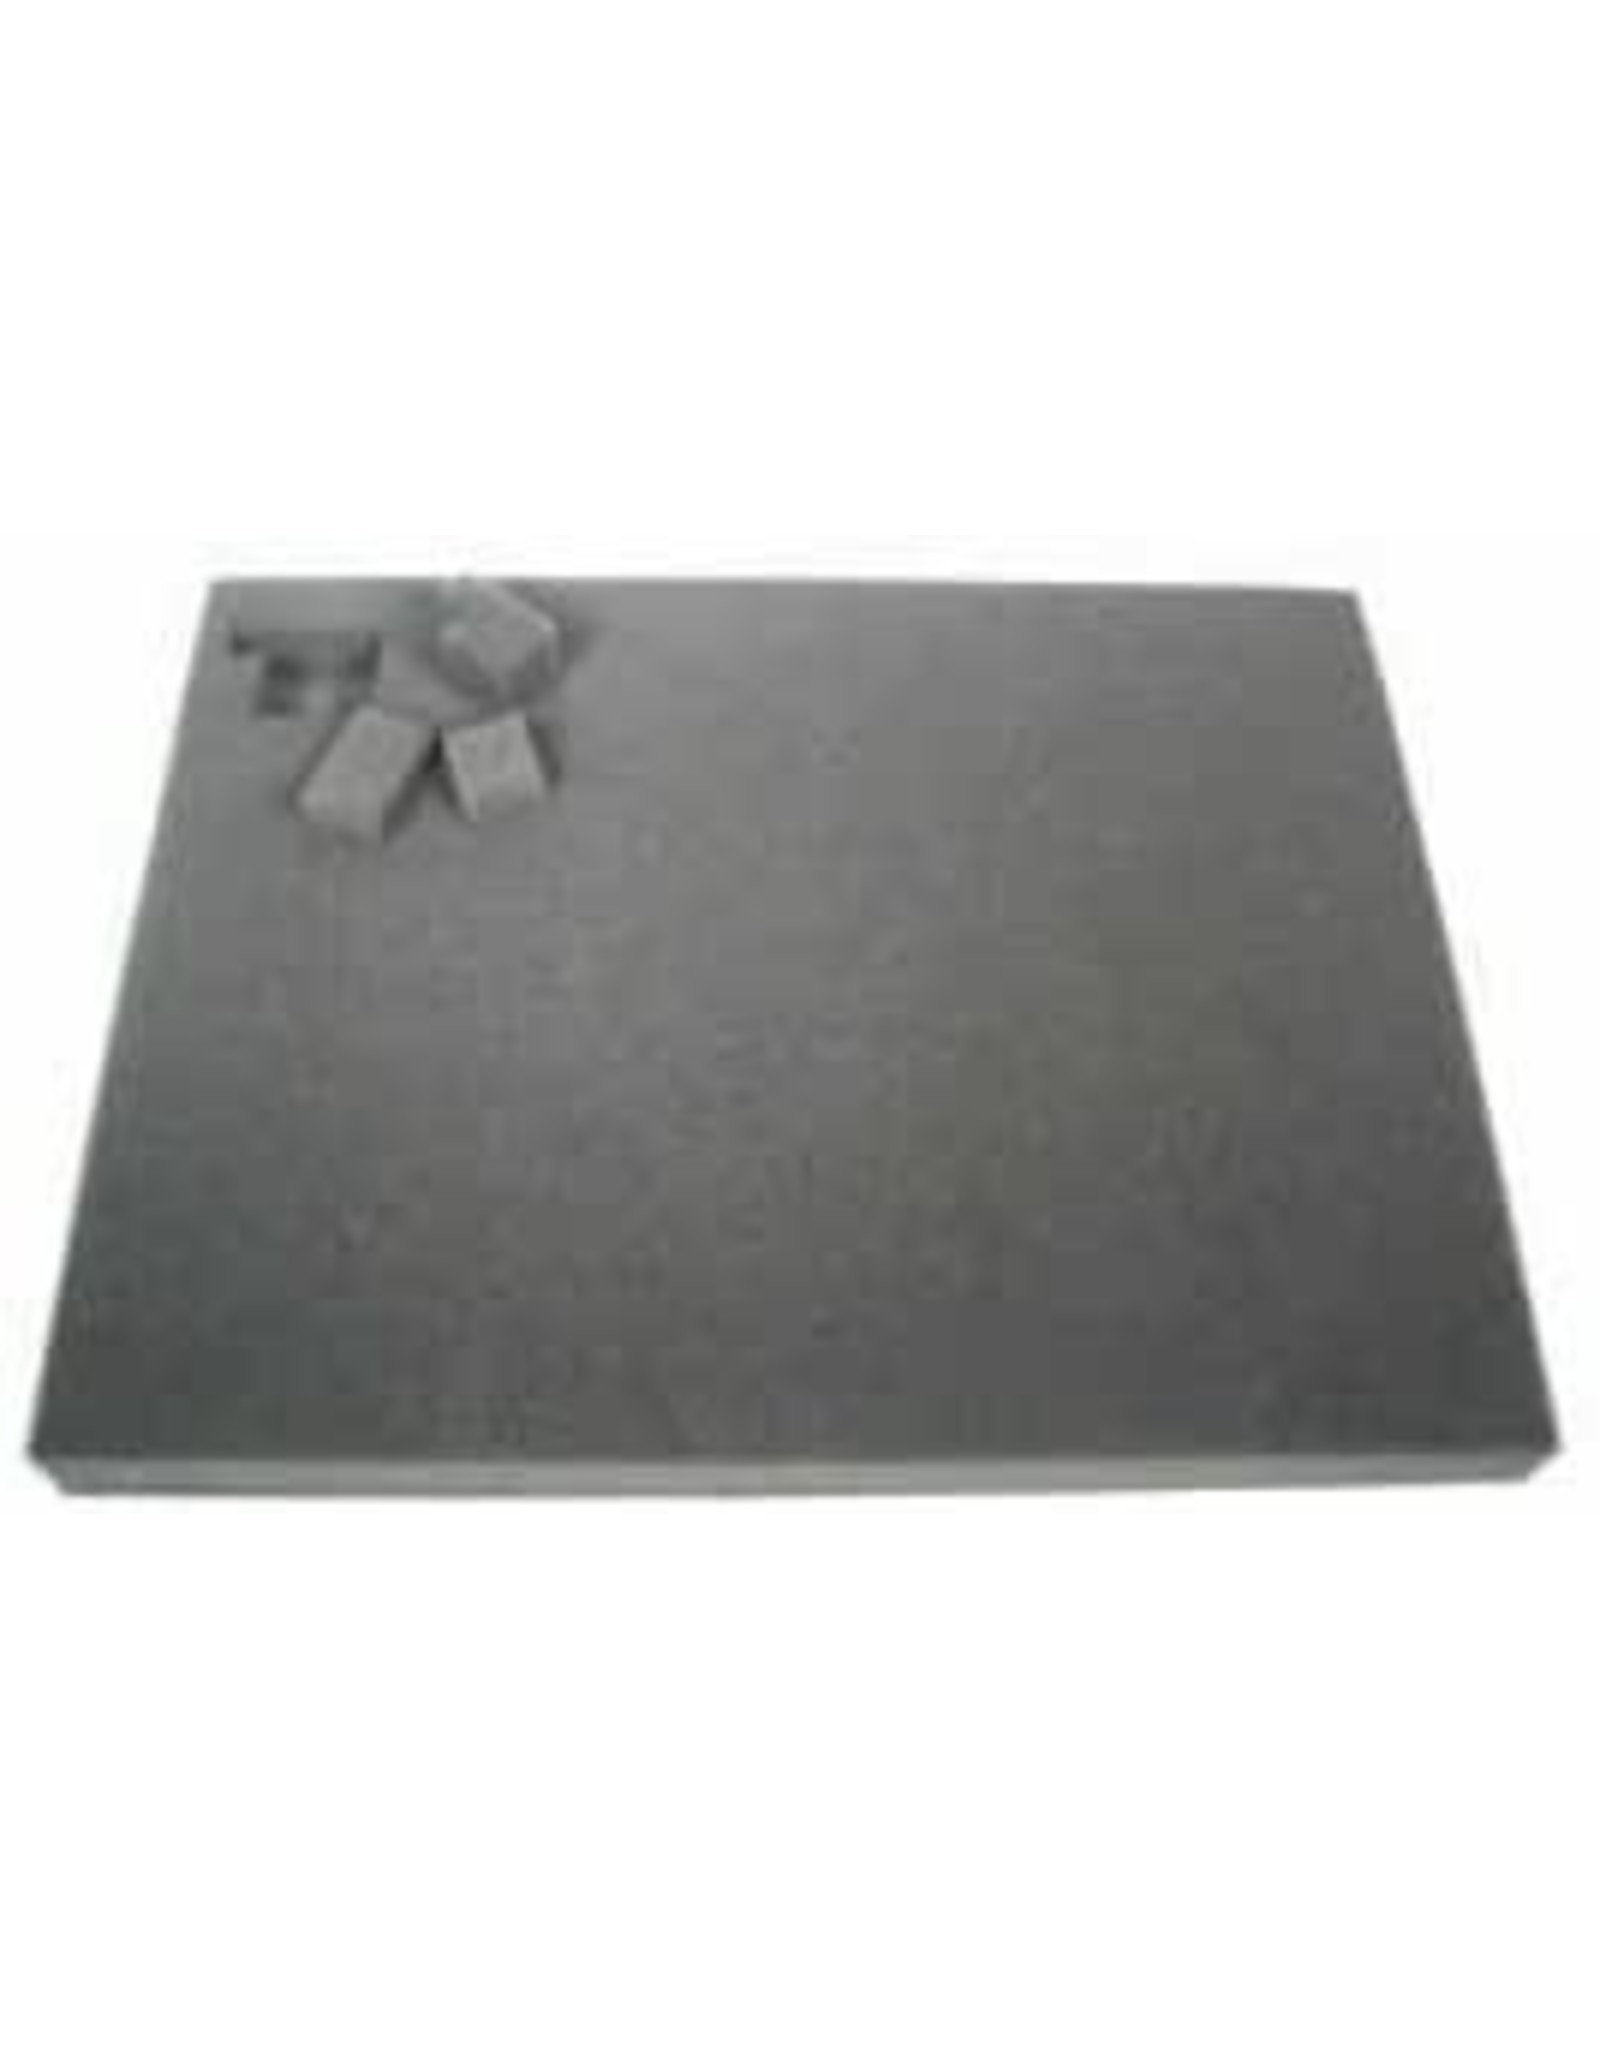 Battle Foam Large Pluck Foam Tray 1 5in Go4games We're here to help you remember some if you haven't caught our review of warhammer question: go4games